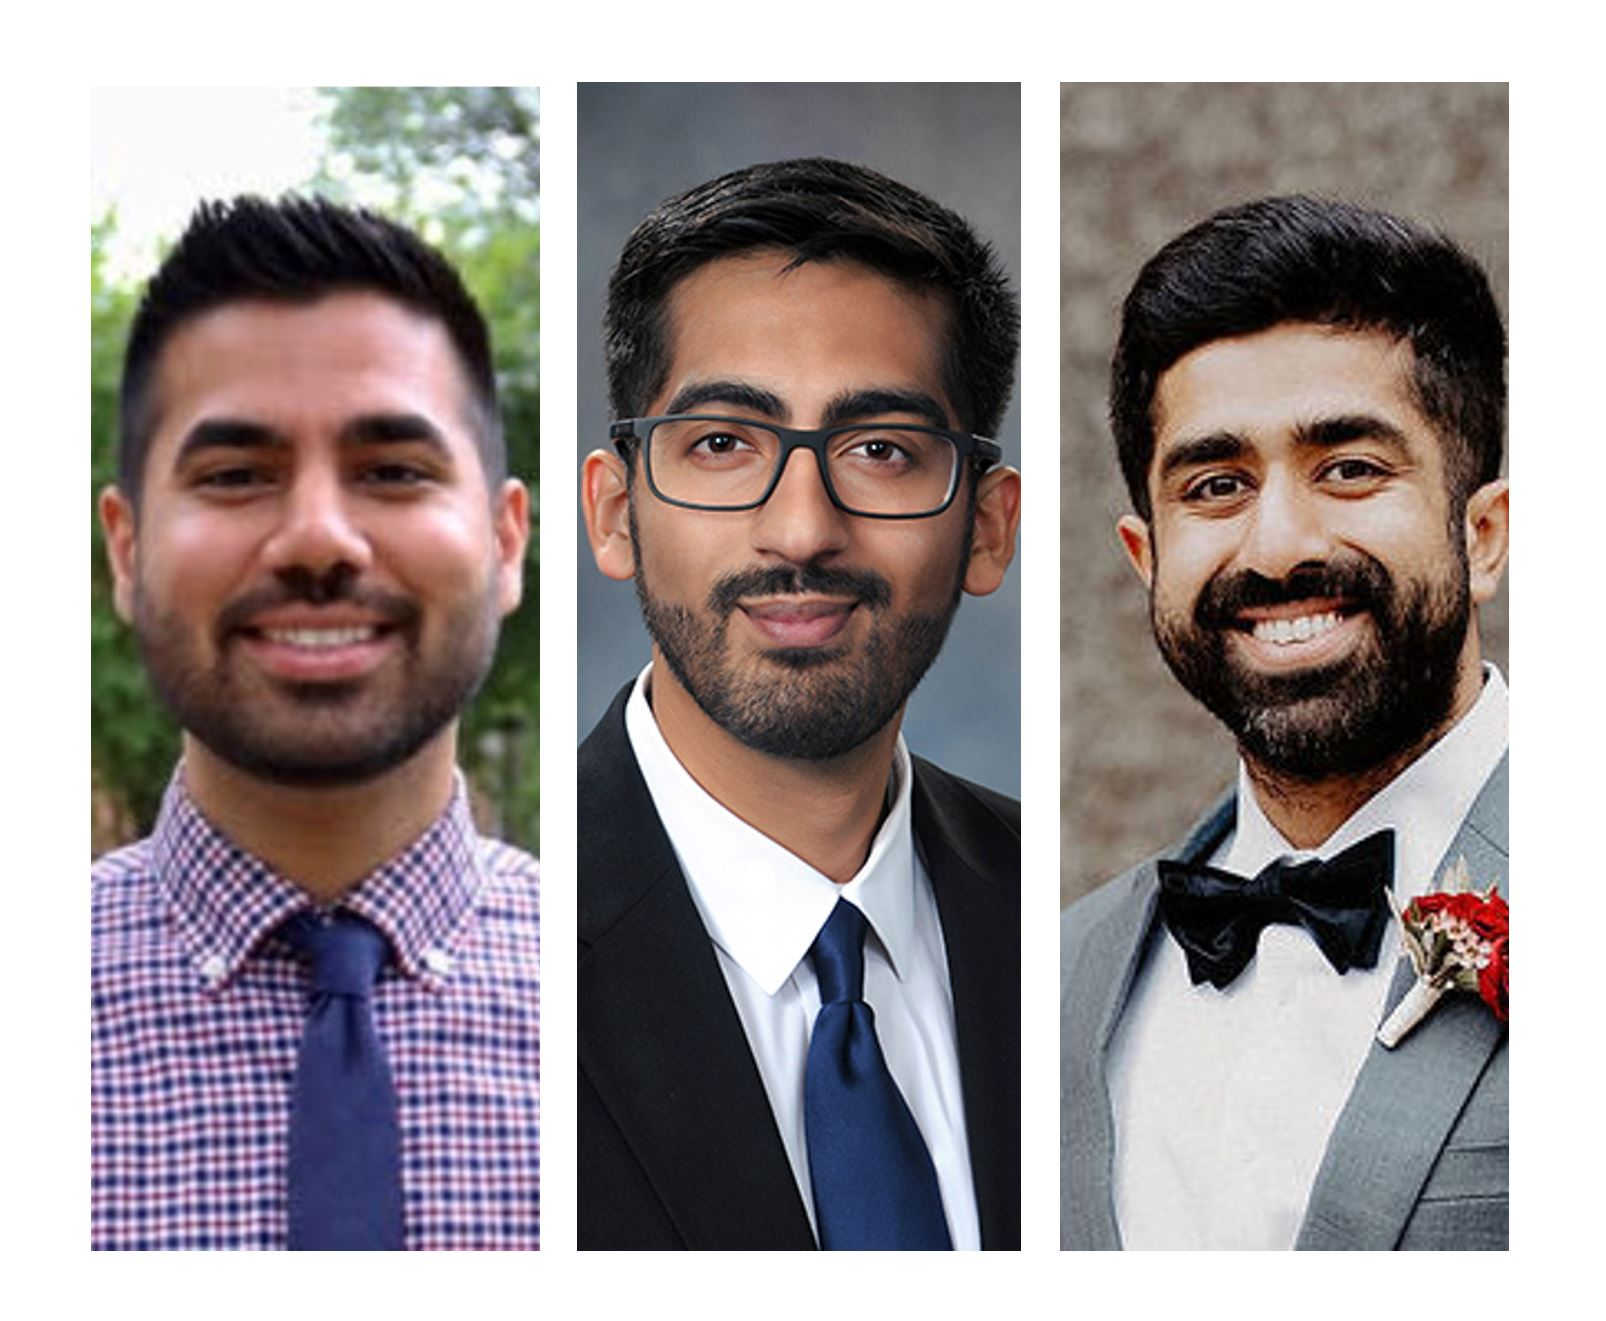 Episode 117: Human dx unknown with Sharmin and Baylor residents – Leg weakness and difficulty swallowing